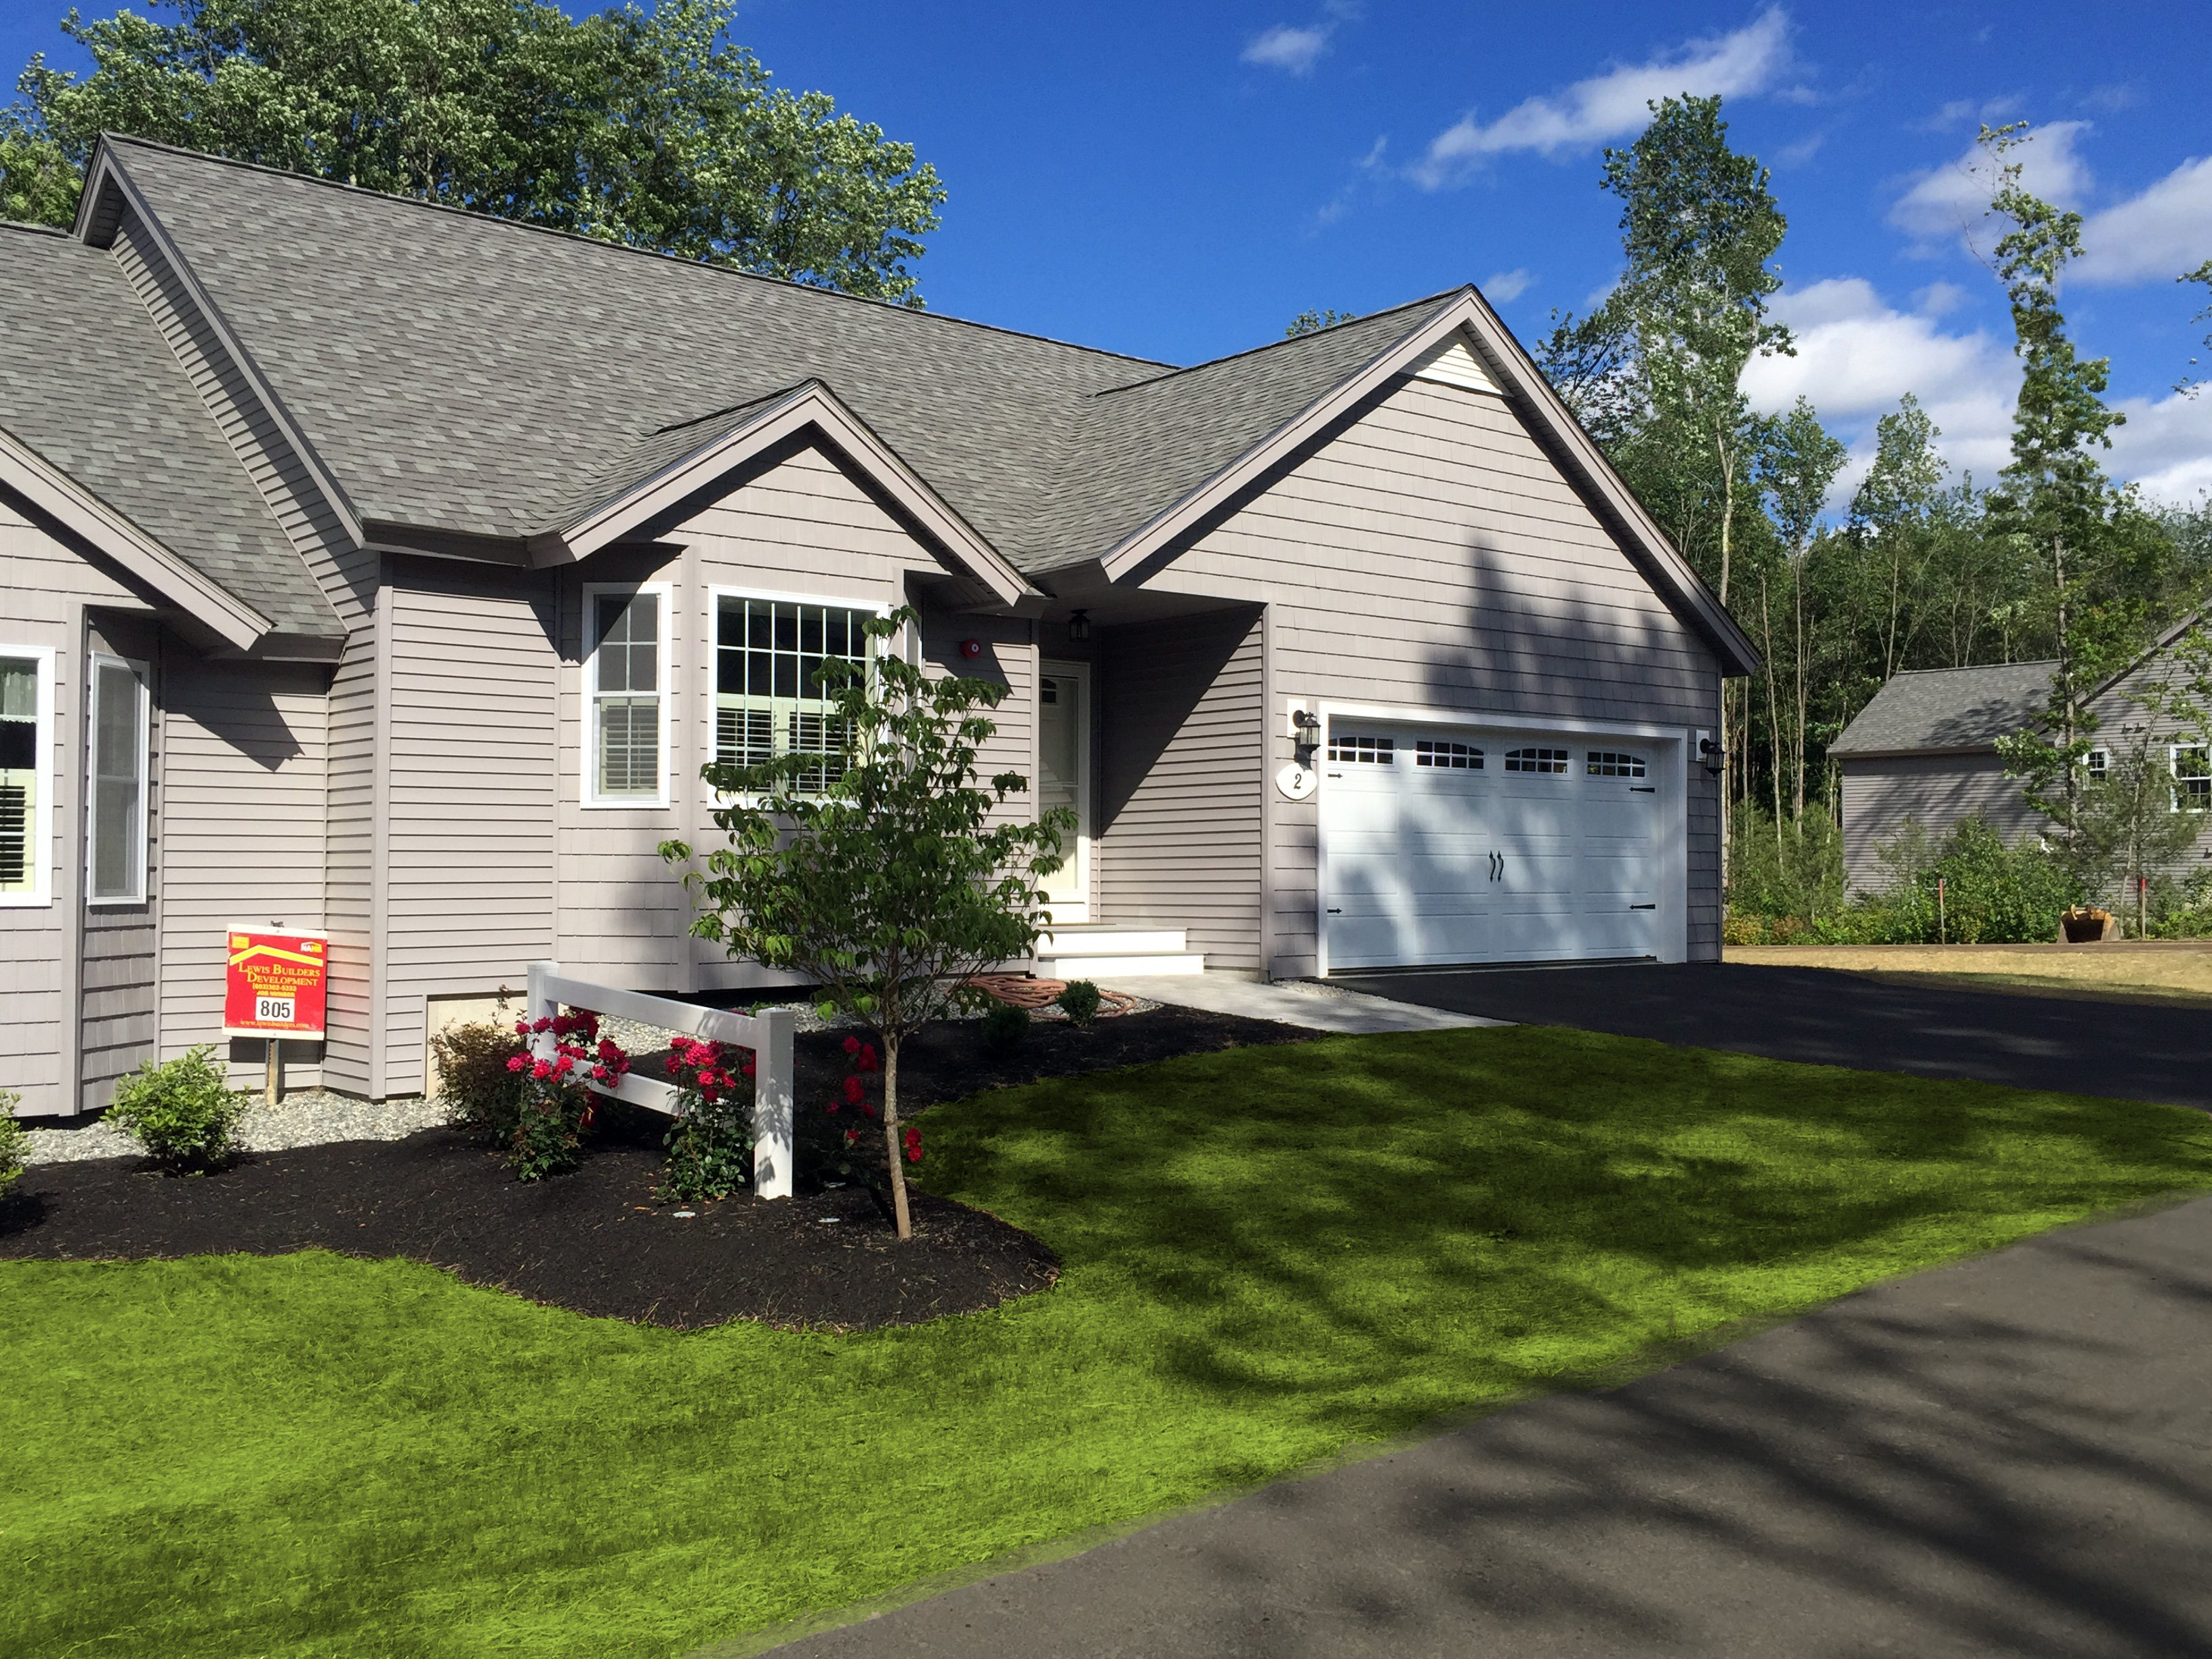 New Home in Atkinson NH built by Lewis Builders in 2016